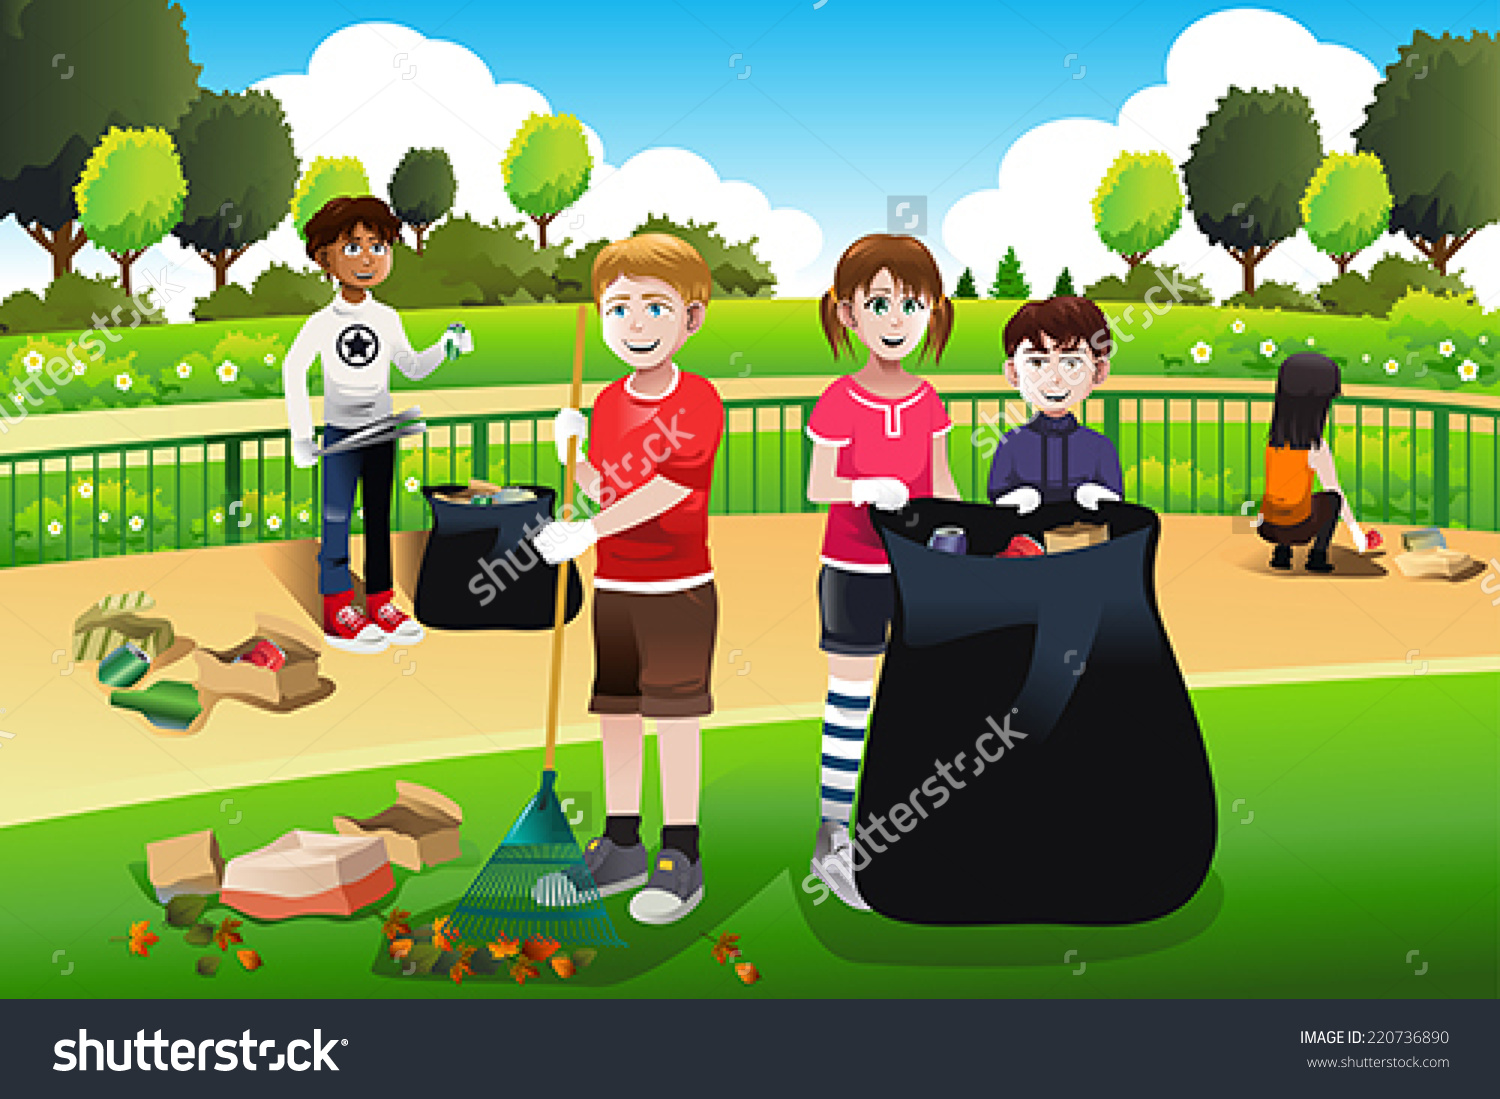 Station . Environment clipart clean community